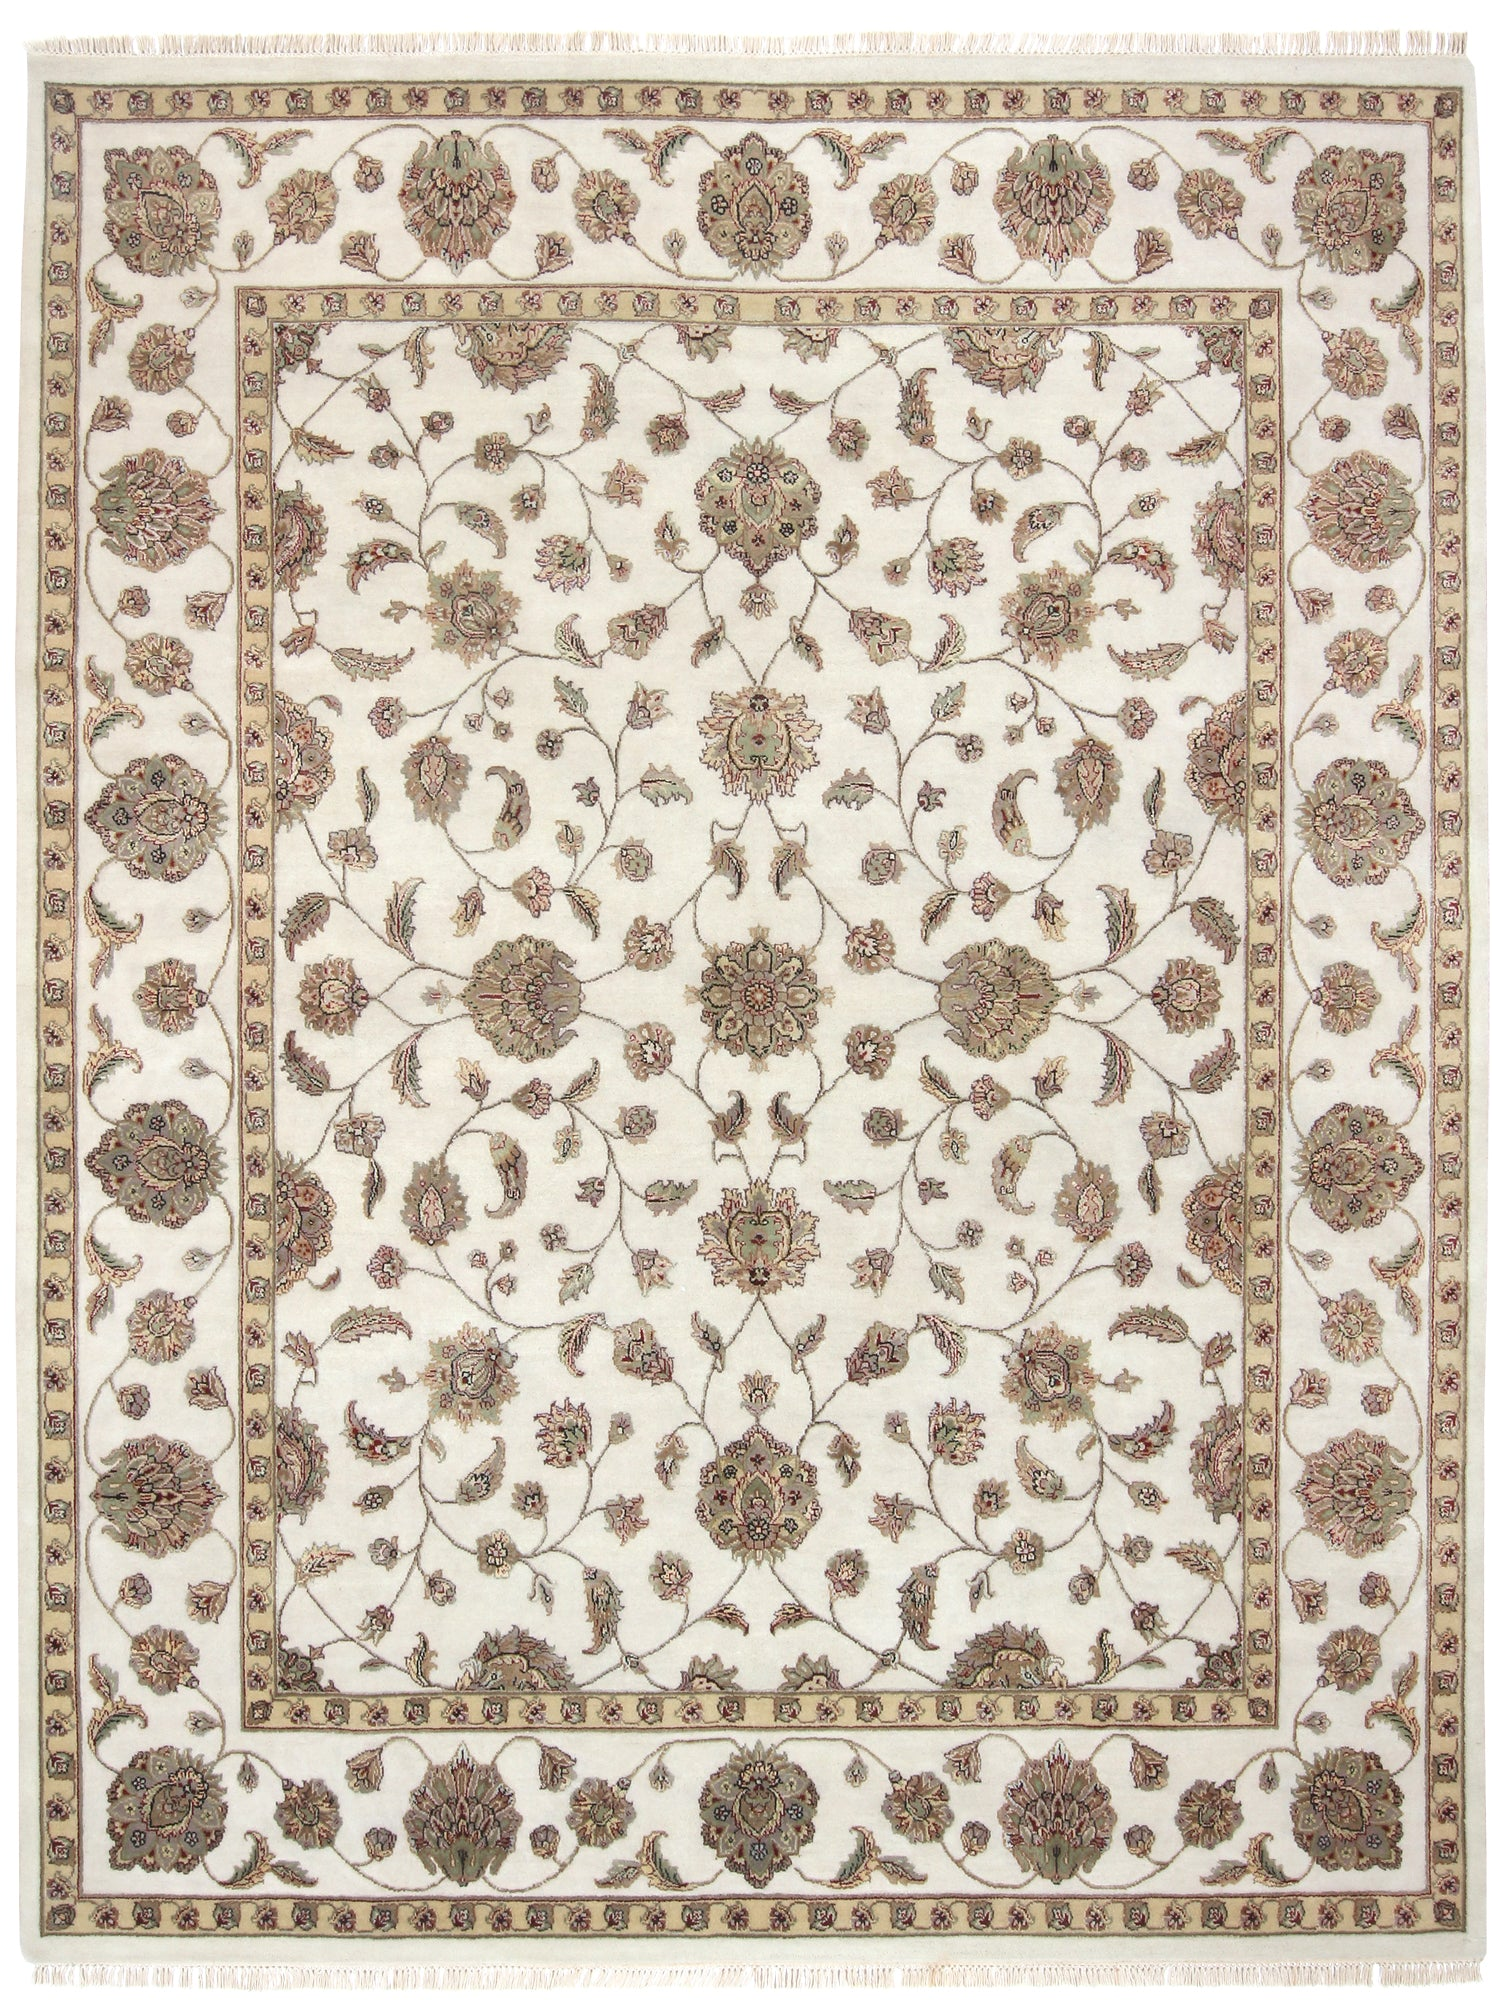 Tabriz Design Rug India Wool & Silk-Turco Persian Rug Company Inc.